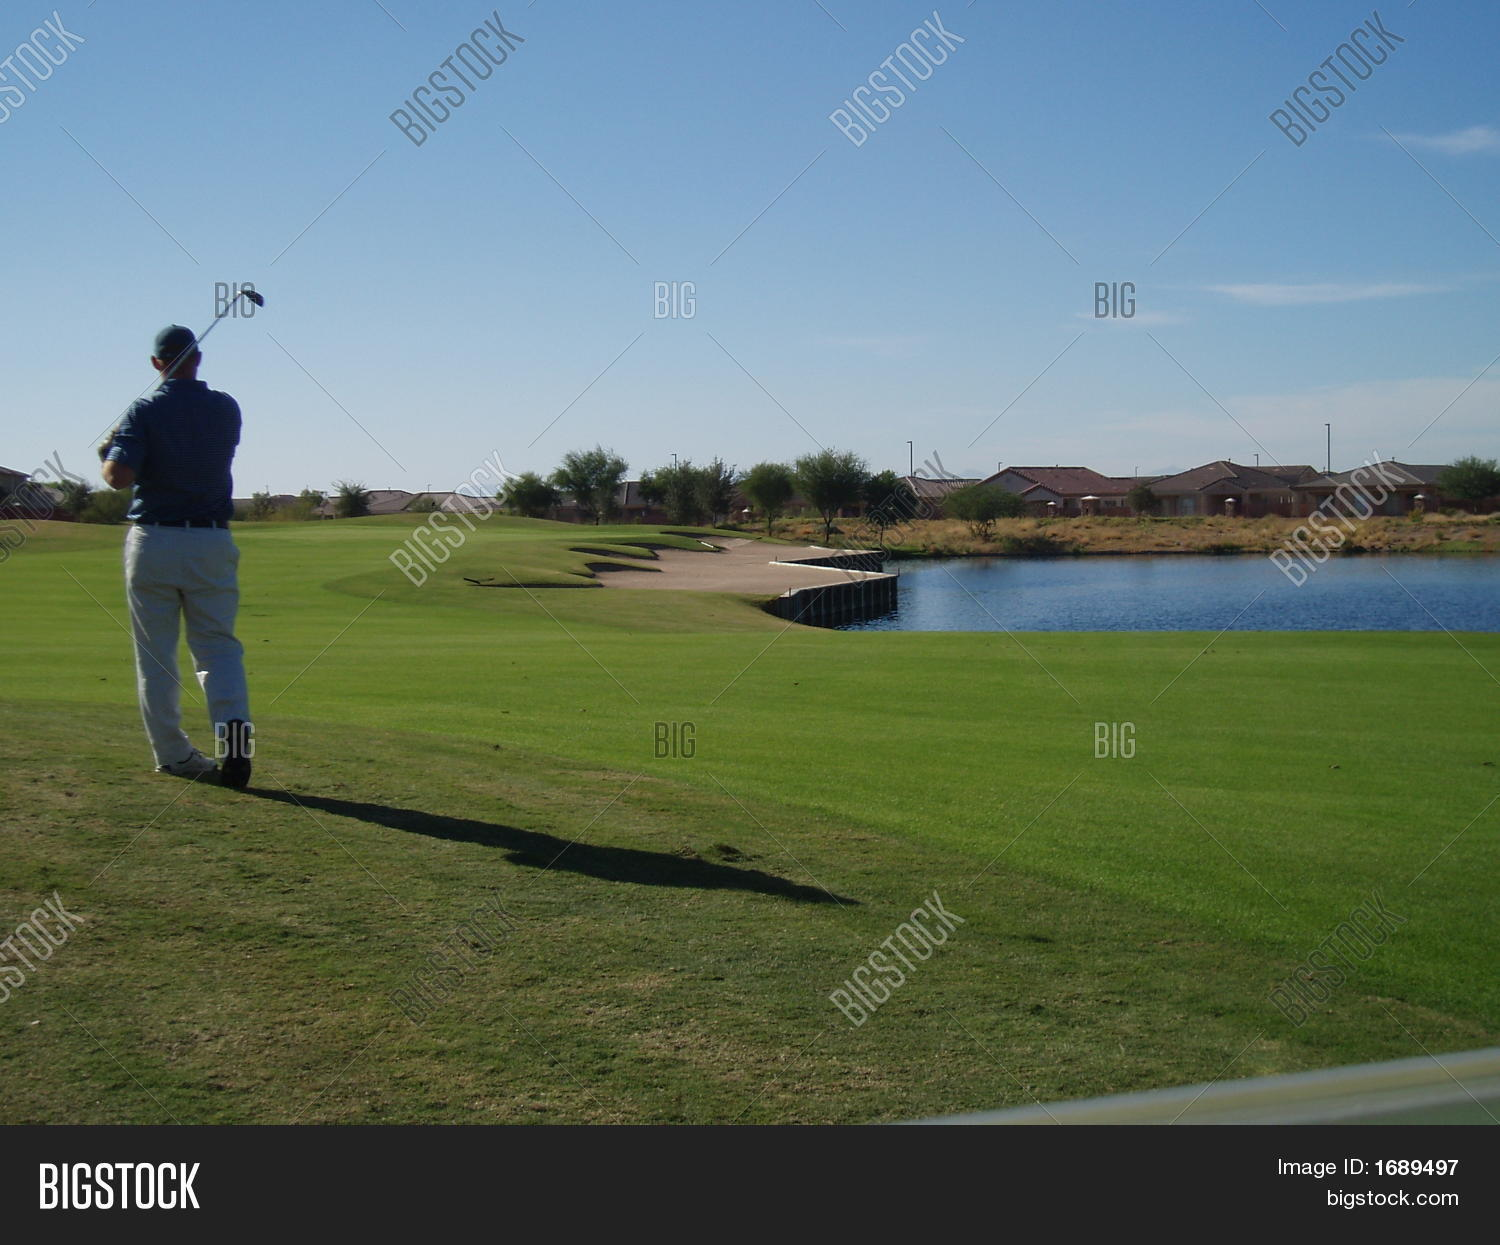 active,arizona,ball,cart,clouds,club,compete,competition,country,course,desert,divot,drive,exercise,fairway,feature,field,follow,form,game,golf,golfer,grass,green,greenery,hit,hobby,horizon,lake,landscape,leisure,life,links,man,natural,nature,outdoor,par,park,play,player,practice,recreation,relax,retire,retirement,rough,scenery,scenic,score,senior,sky,skyline,sport,swing,tee,trees,vacation,water